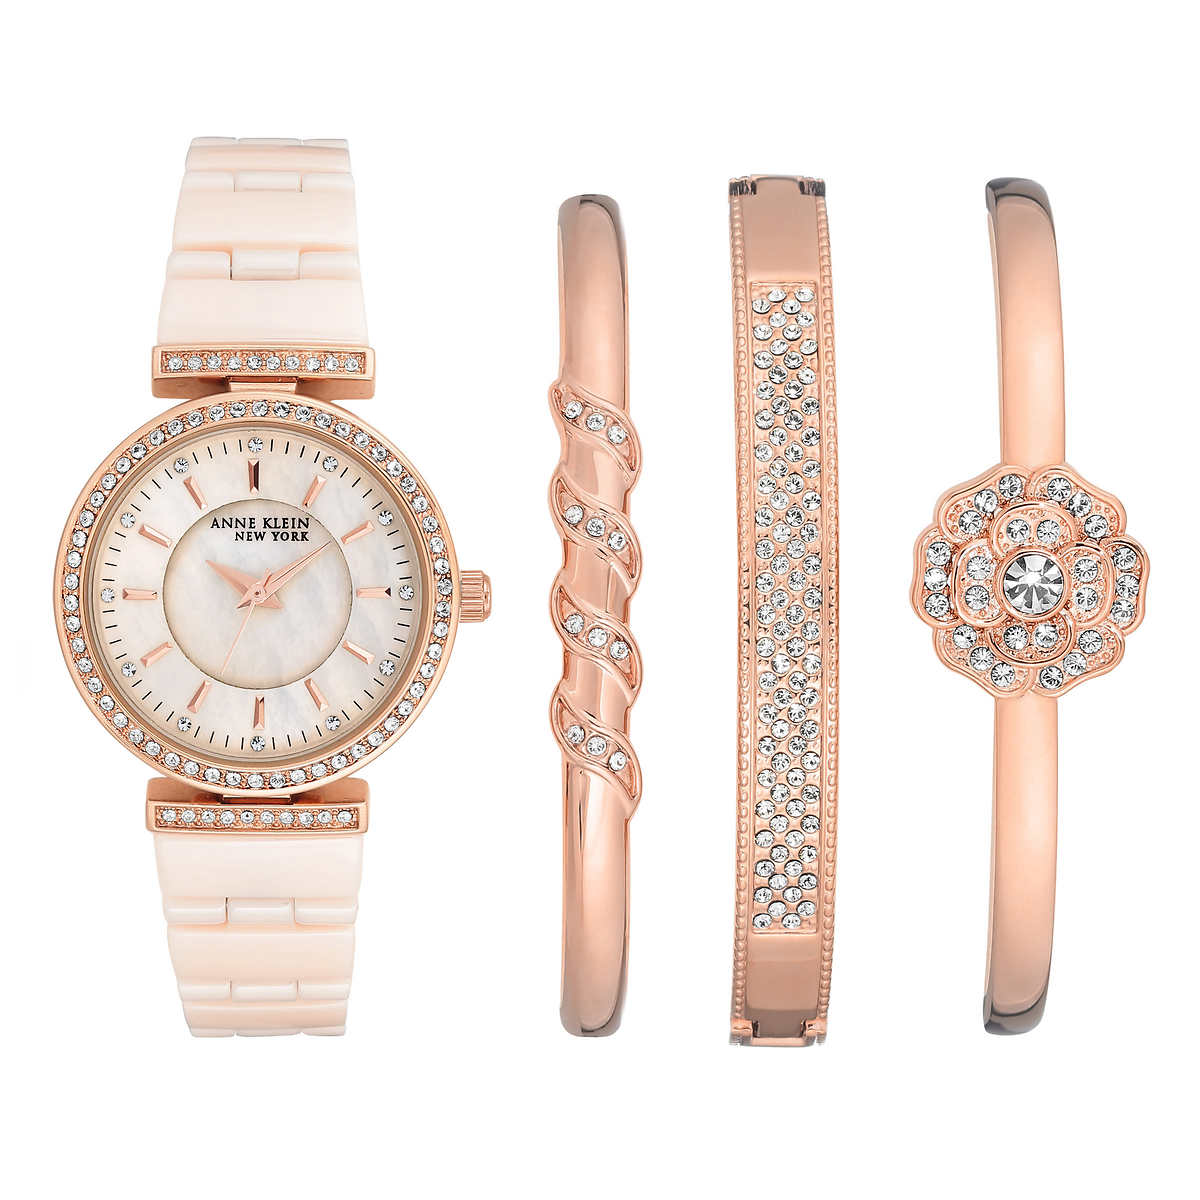 Anne klein new york rose gold tone ceramic watch and bangle set ebay for Anne klein rose gold watch set